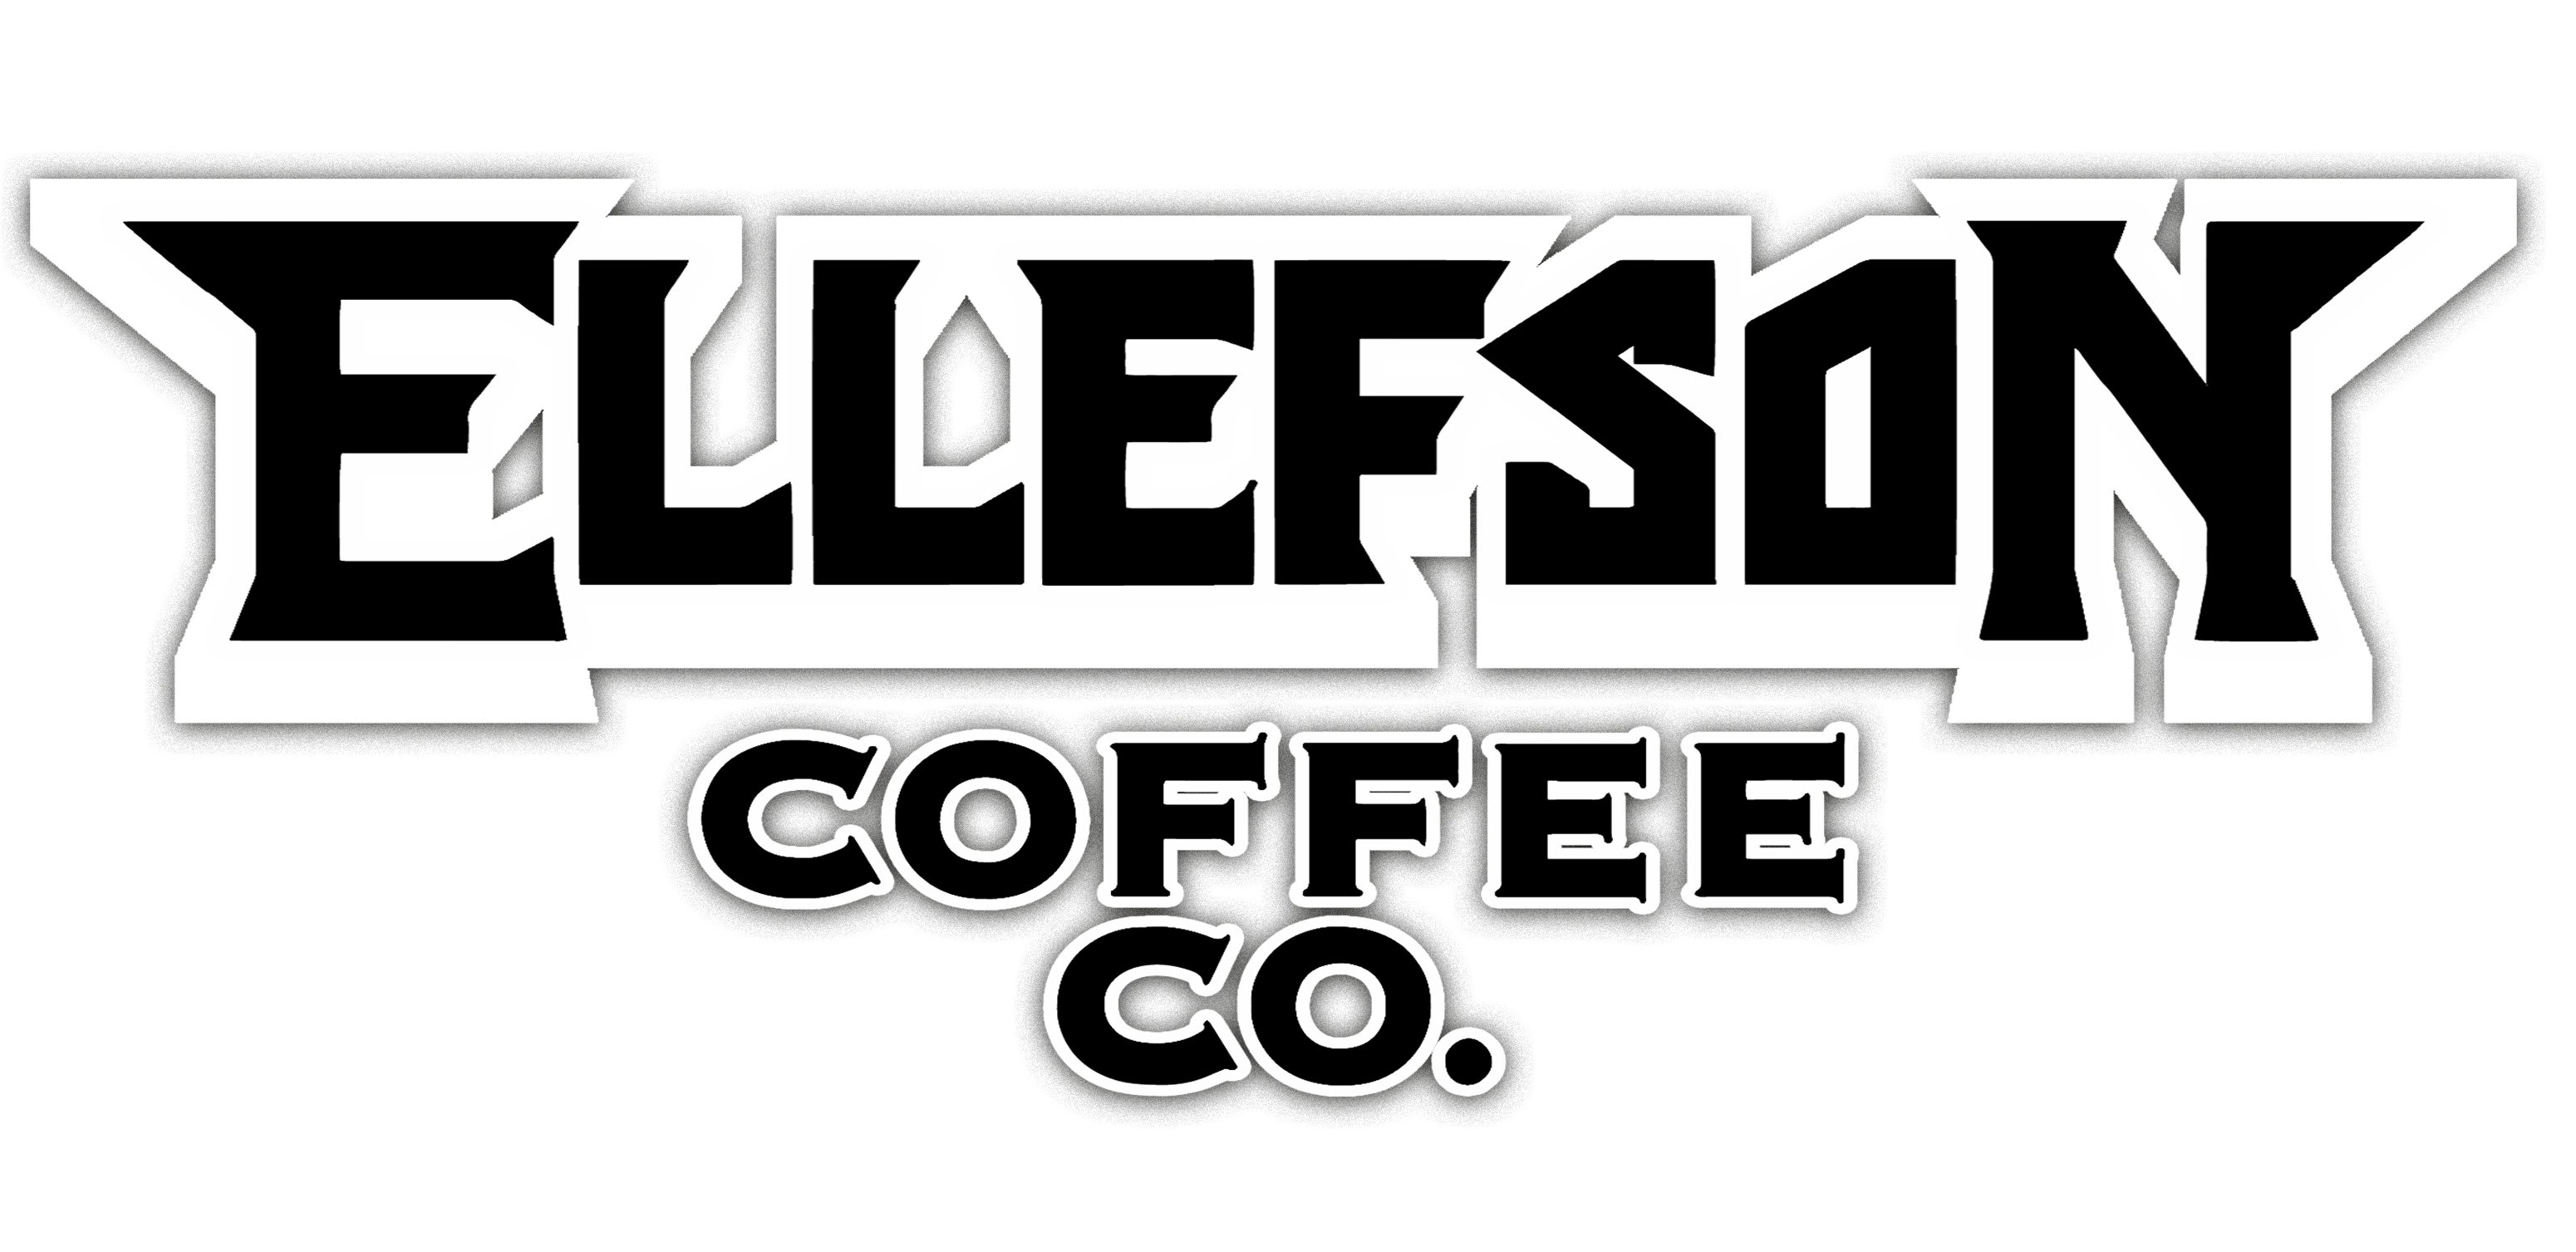 Ellefson Coffee Co.